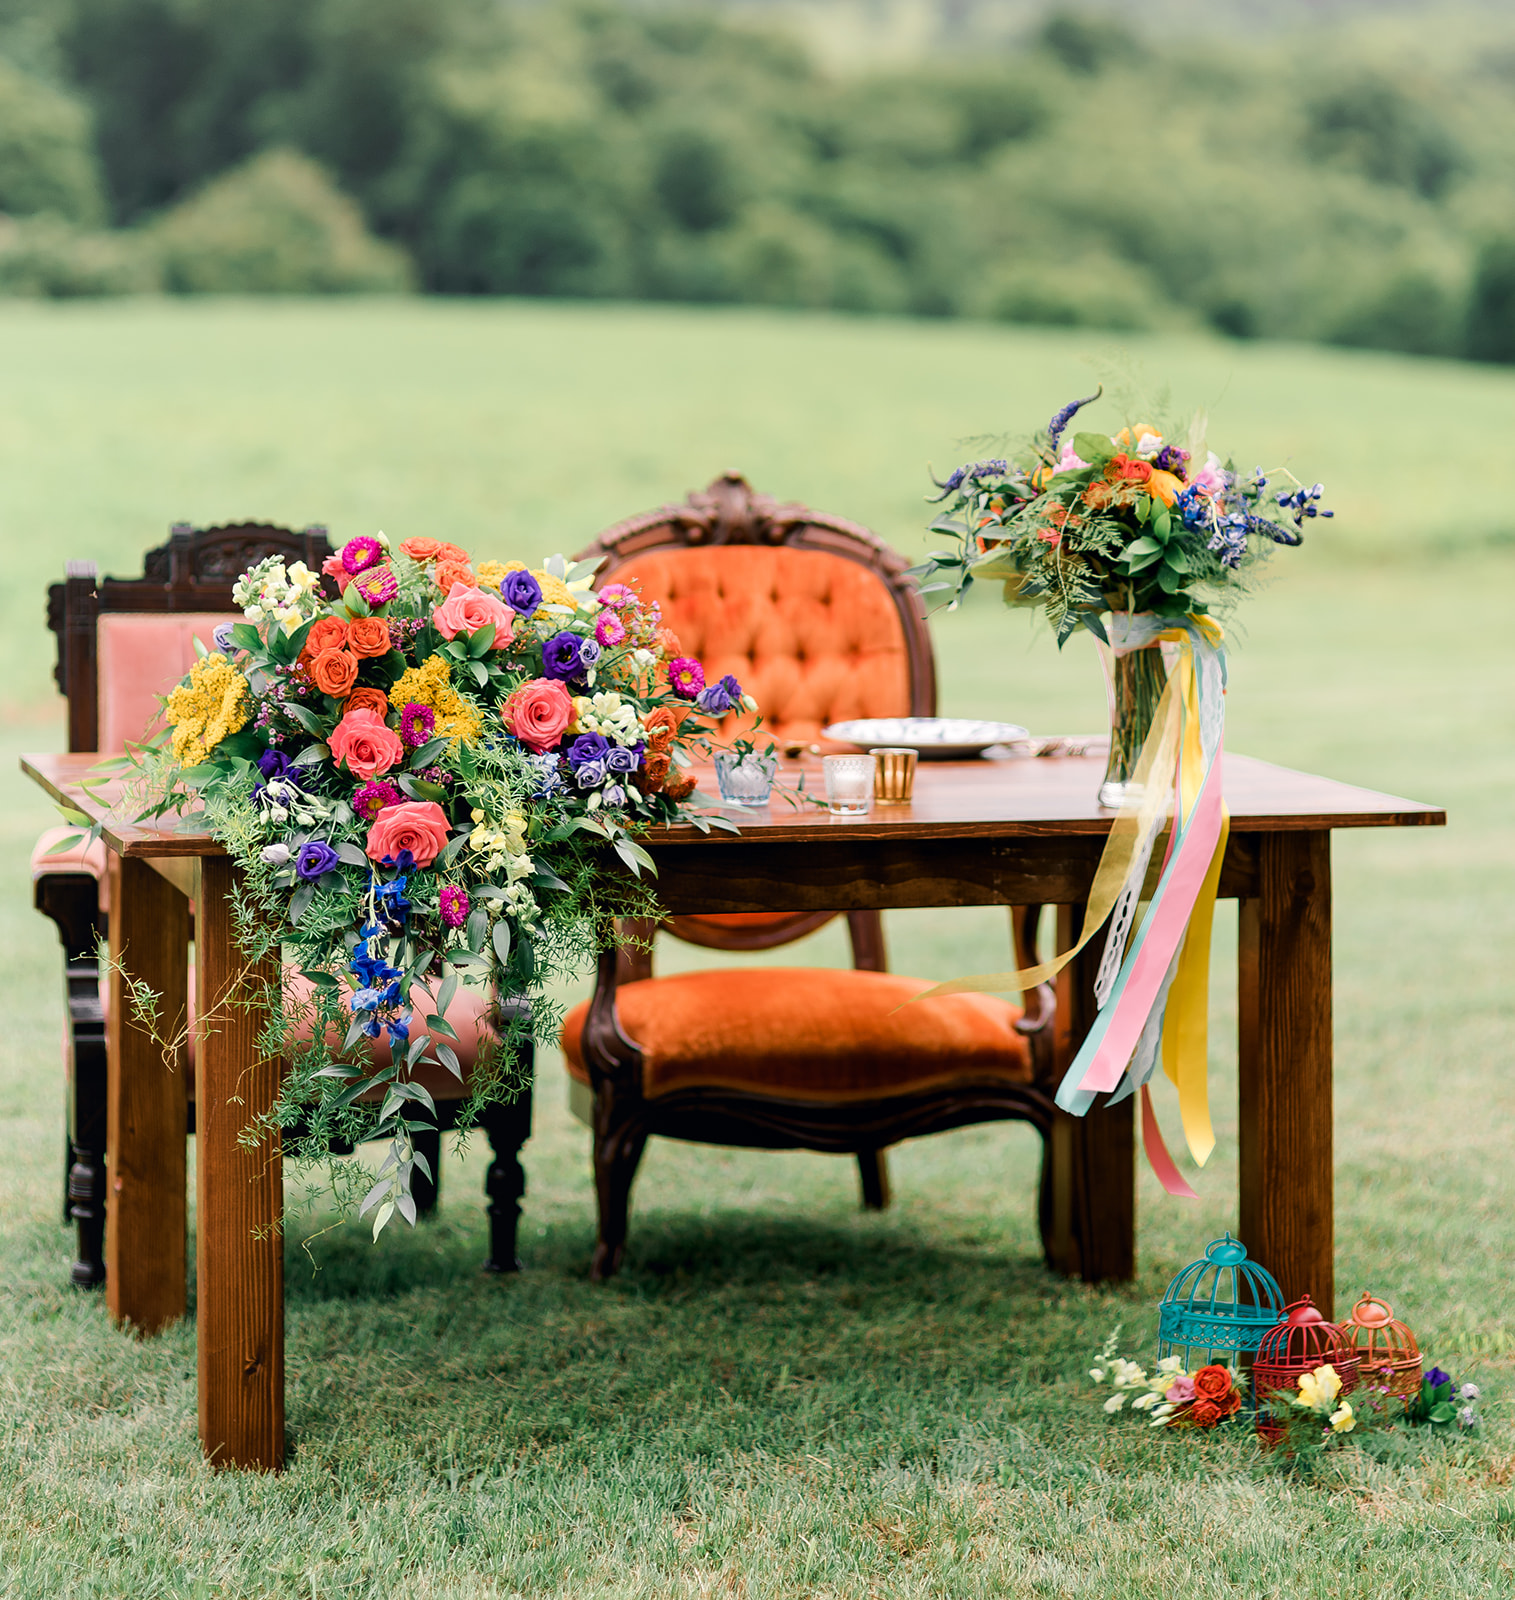 Fun & Colorful Barn Wedding Sweetheart Table at Heaven Sent Farms in Avella Dawn Derbyshire Photography  (12).jpg